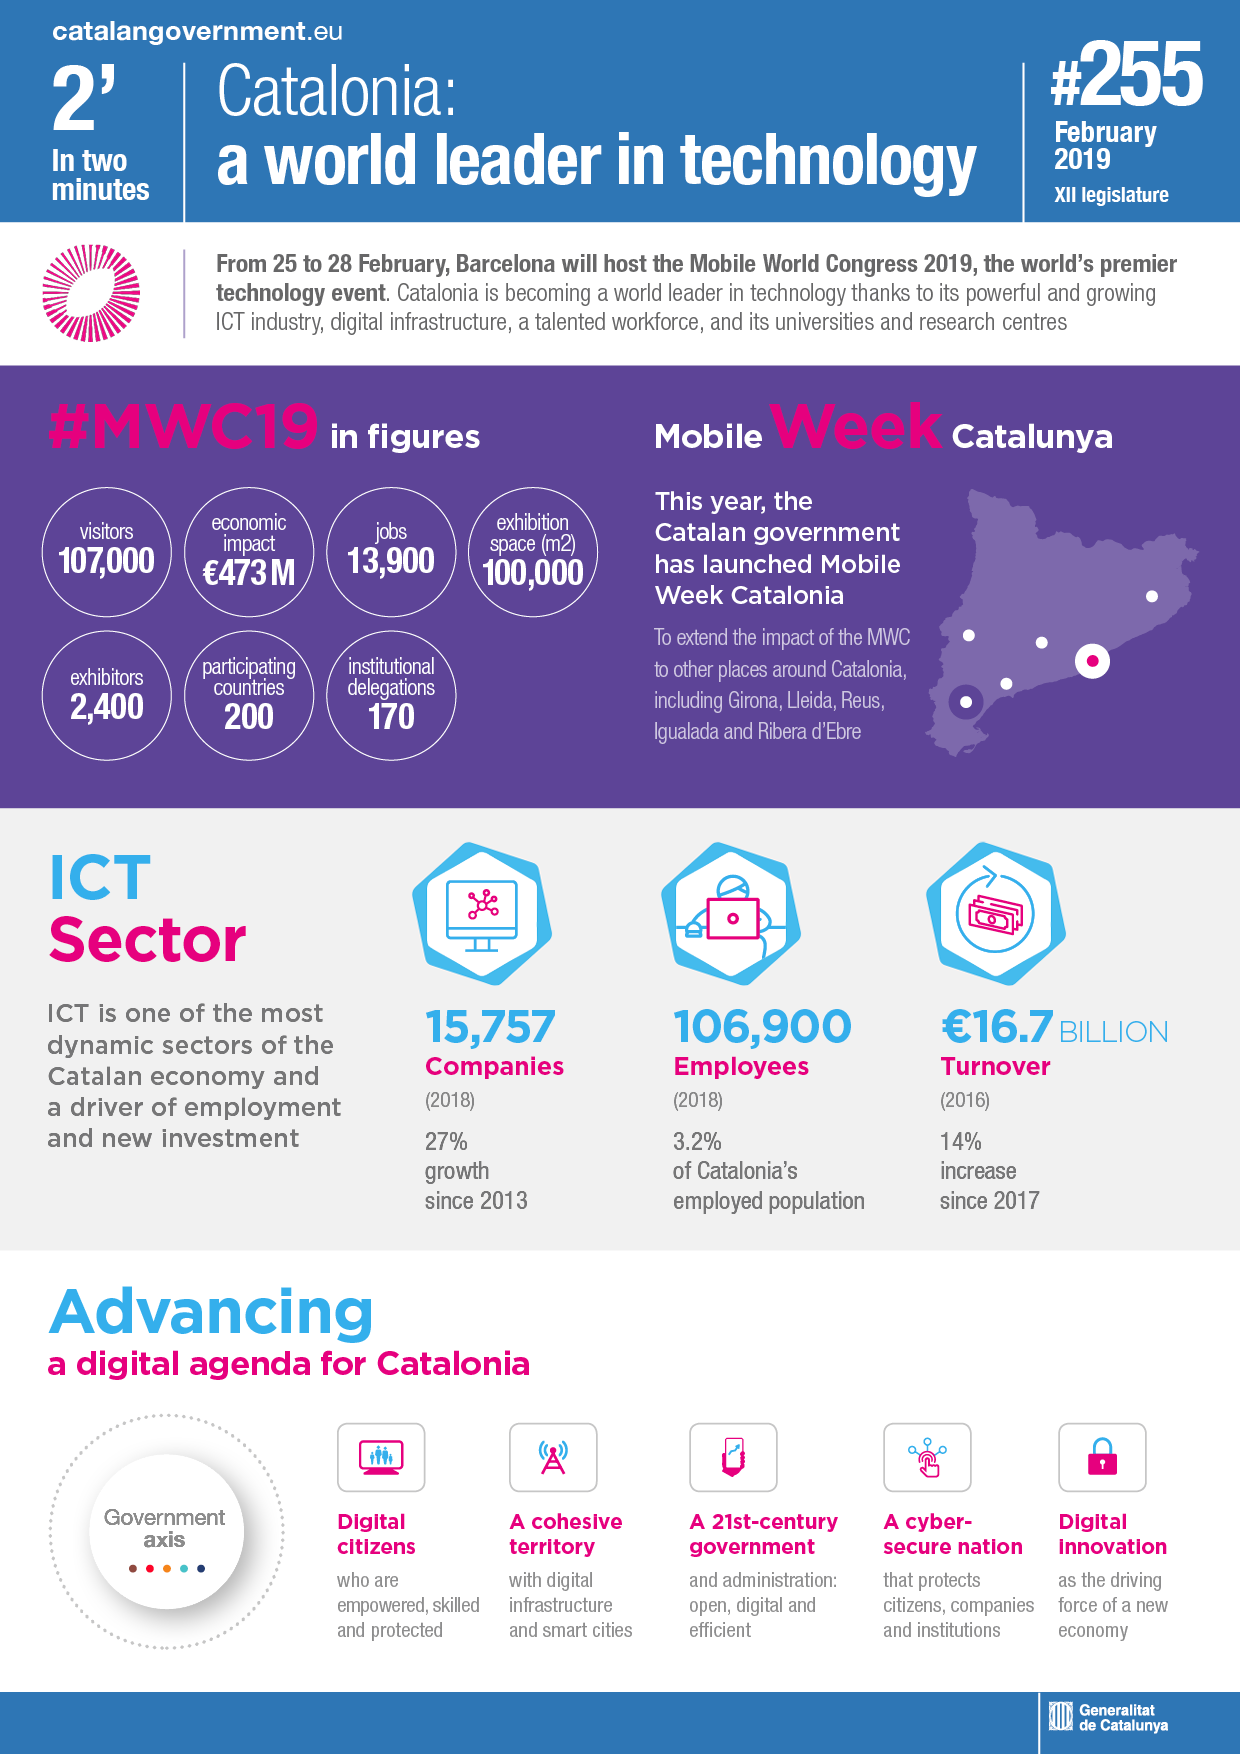 Catalonia: a world leader in technology